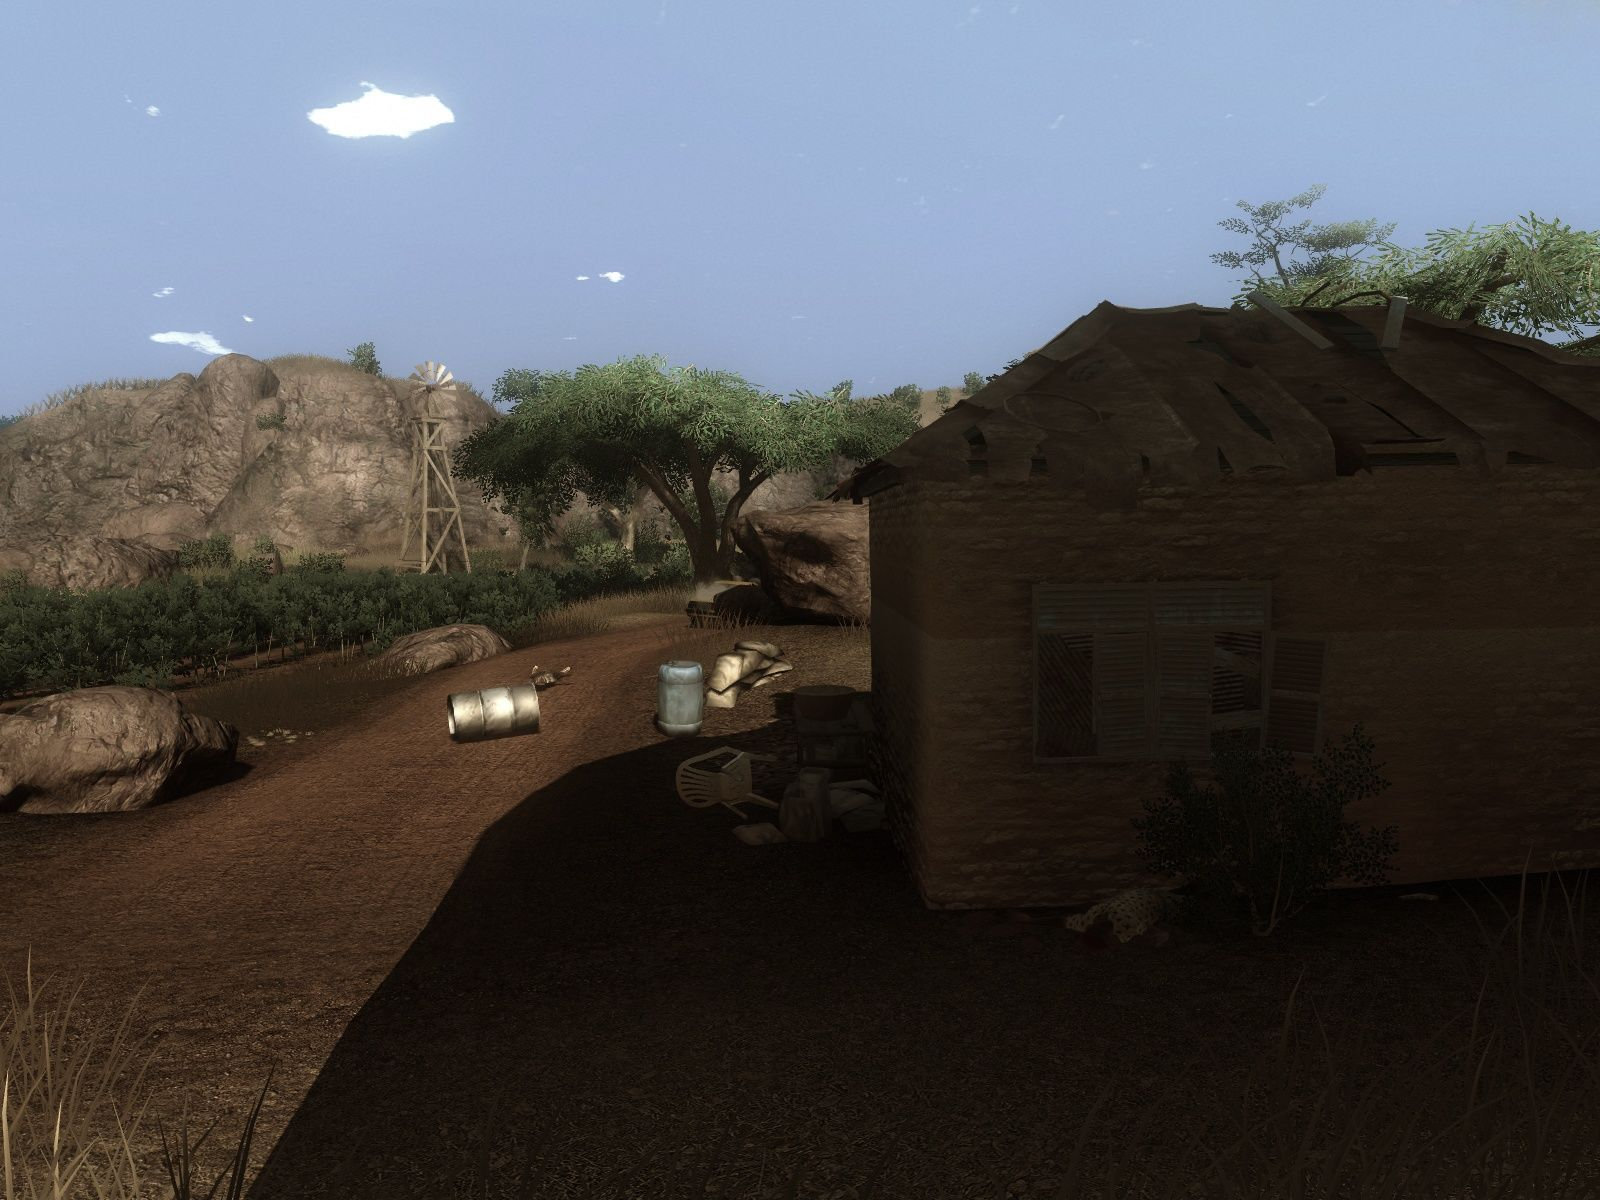 Far Cry 2 Windows The day passes by while the player sleeps in the save house.